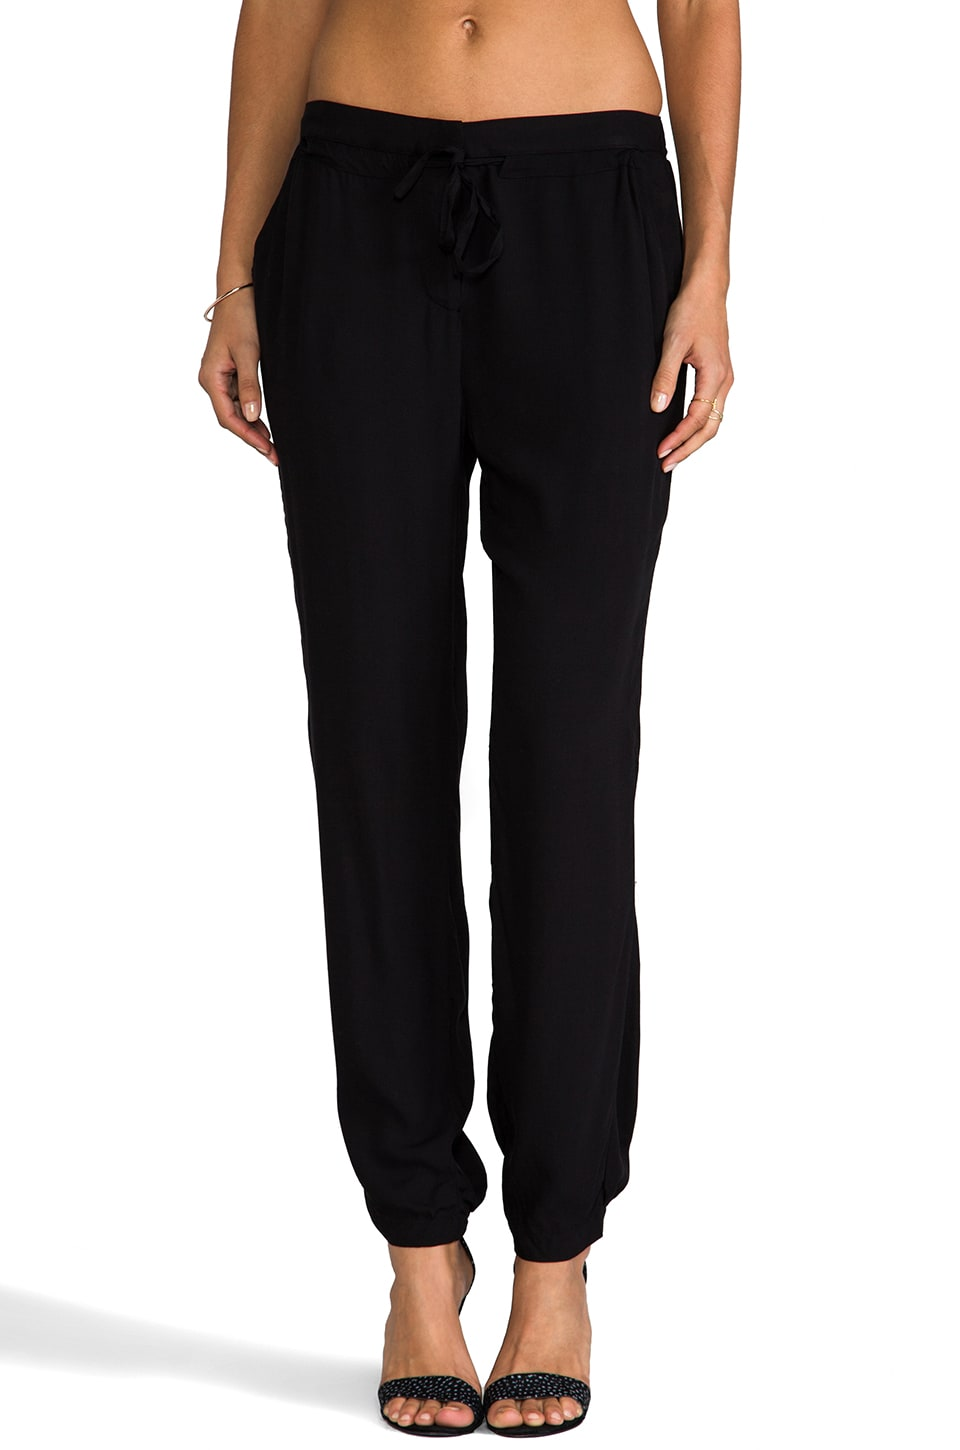 Nation LTD Paradise Cove Pant in Black